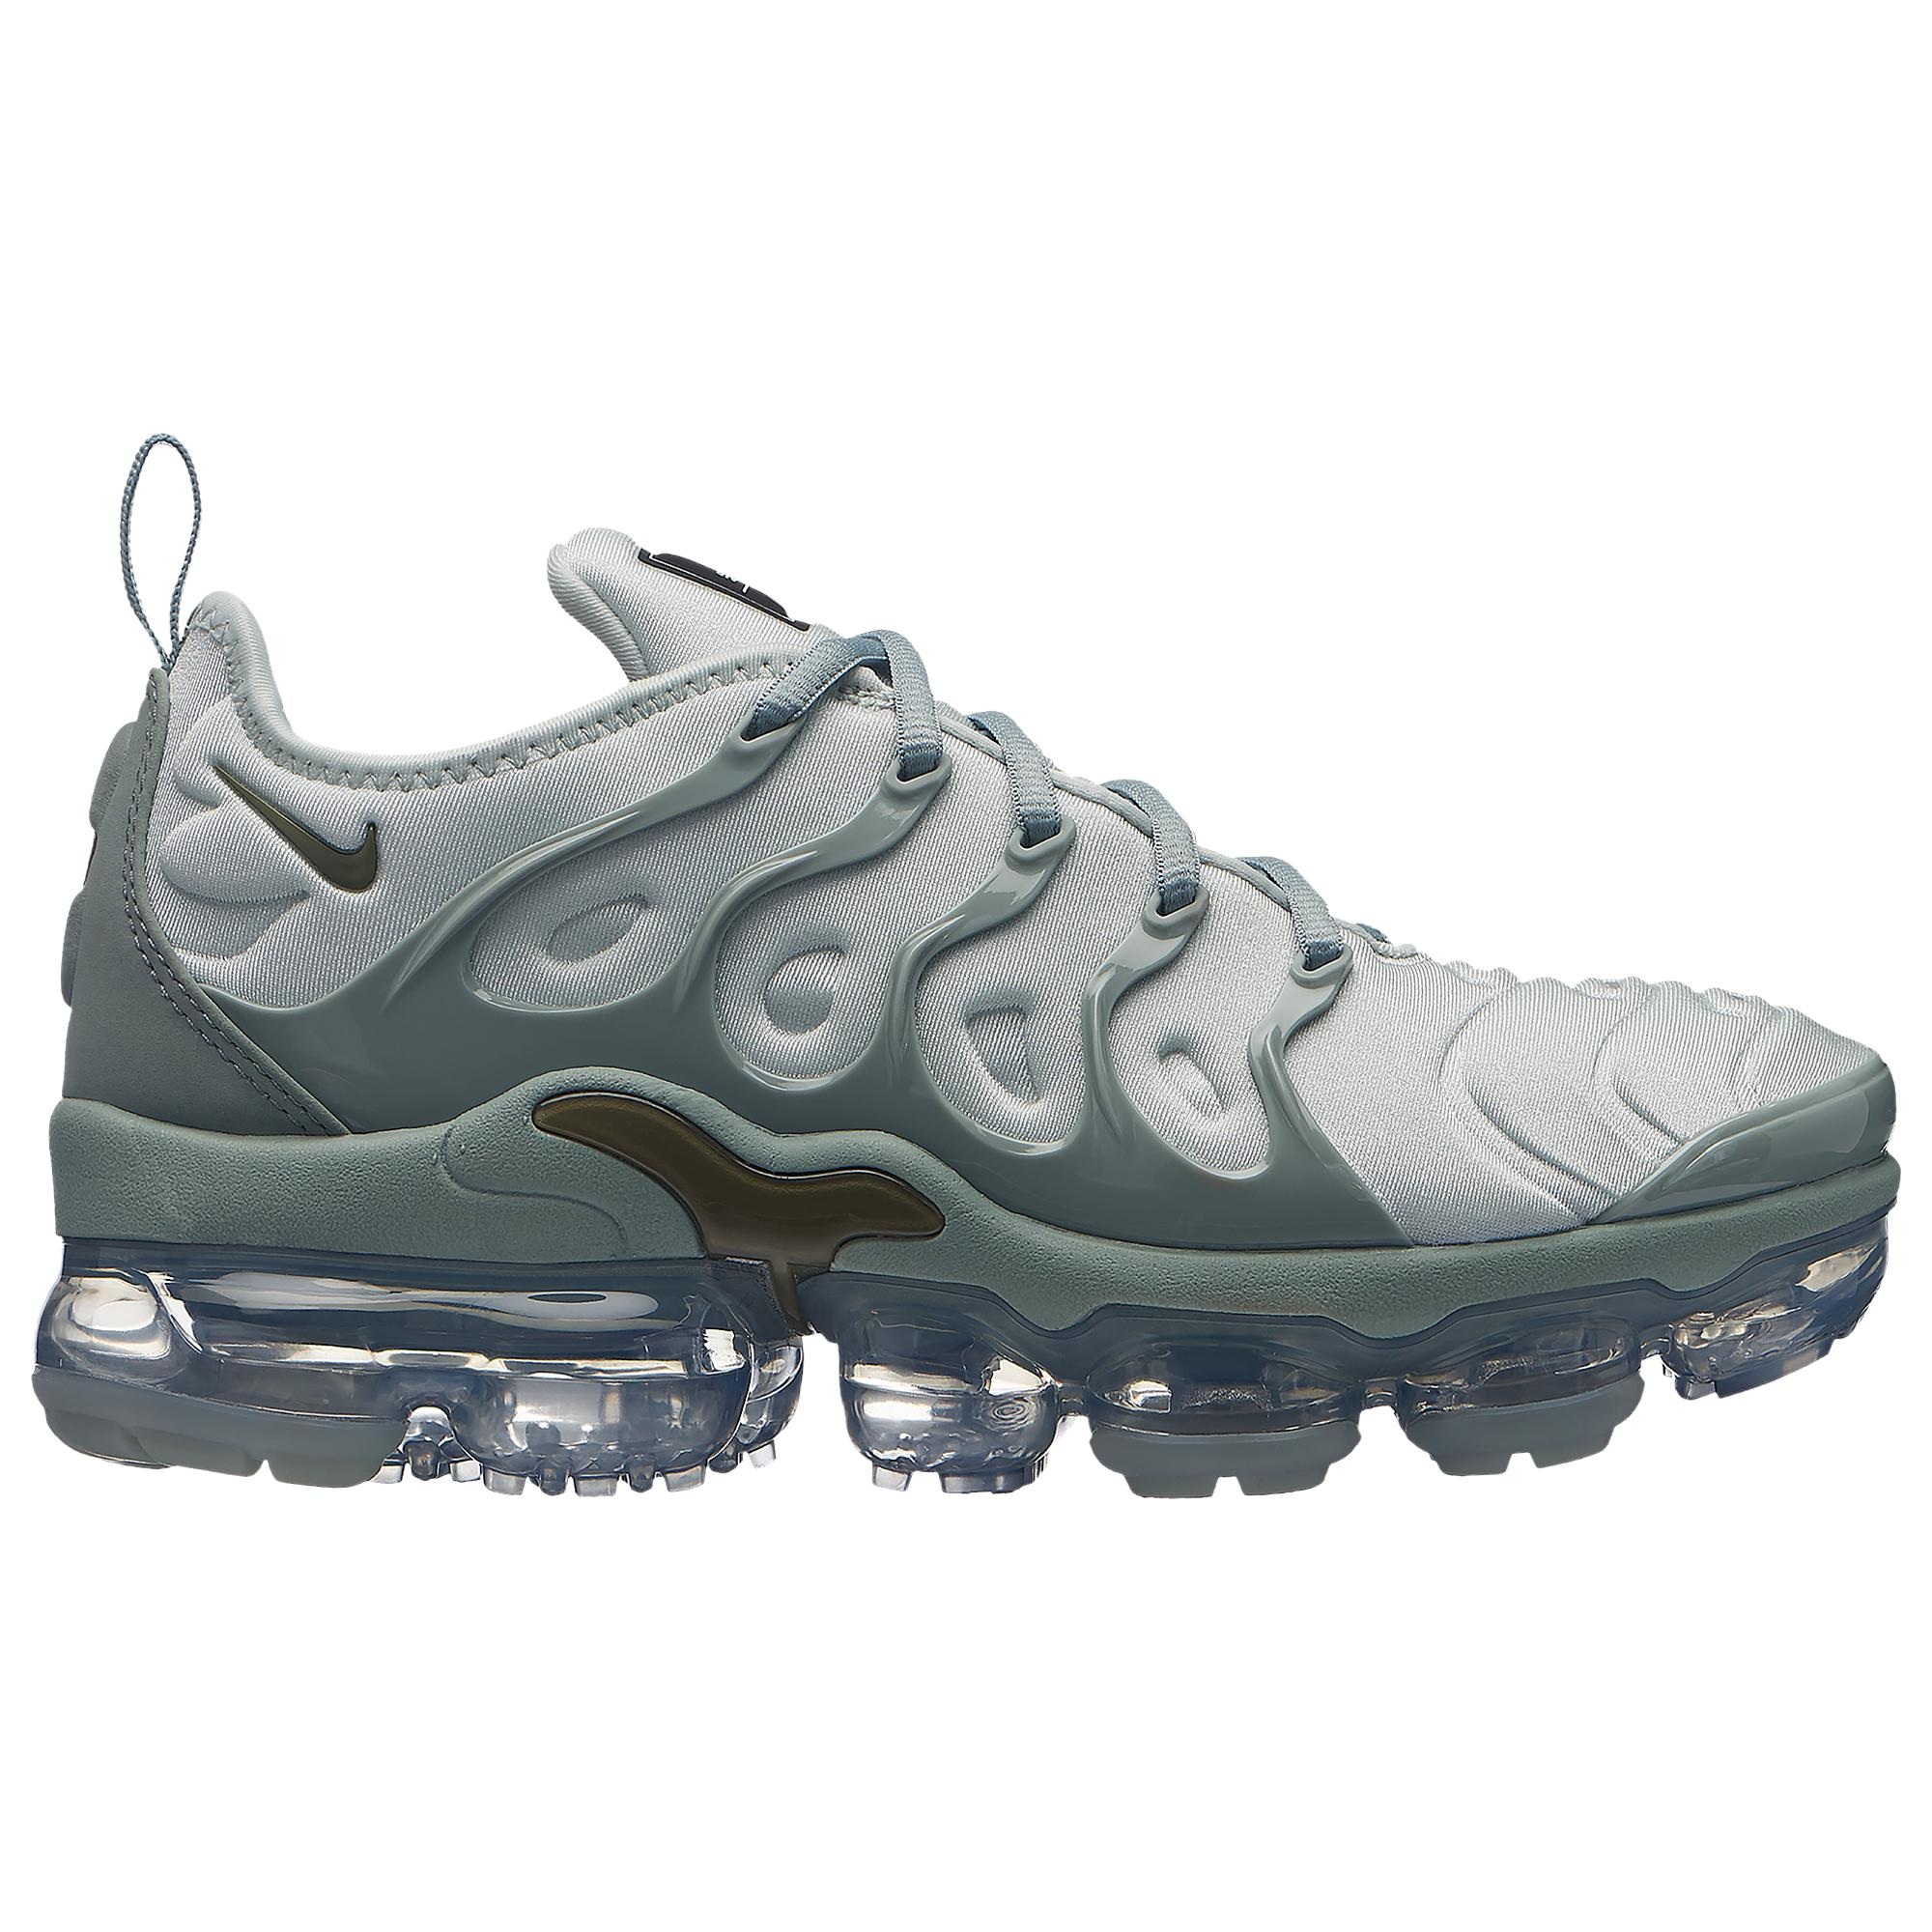 5e796ad6bf378 Lyst - Nike Air Vapormax Plus in Gray